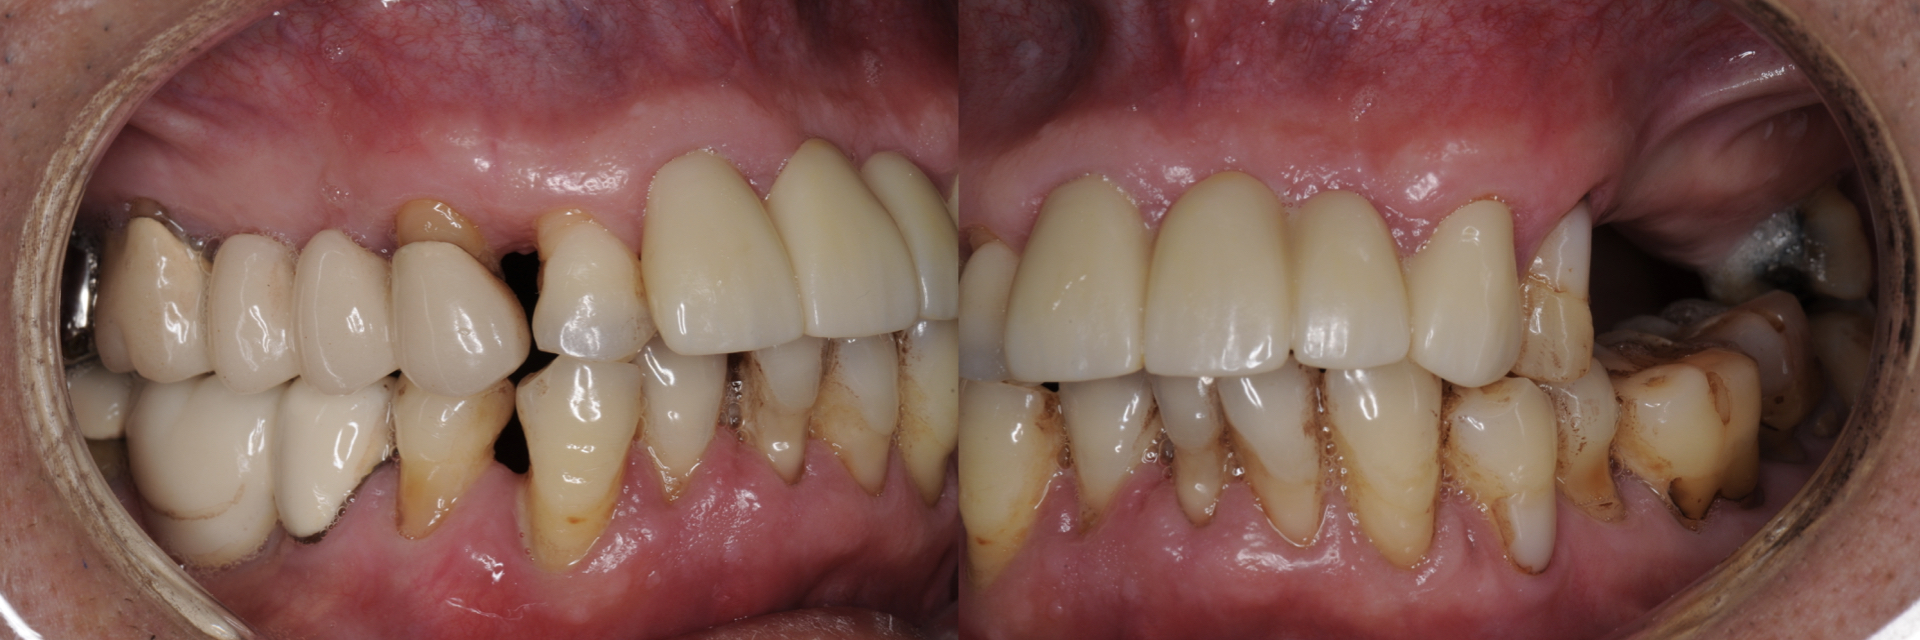 Digital-Workflow-for-Full-Arch-Implant-Supported-Teeth-Chrome-GuidedSmile-Kazemi-Oral-Surgery-Bethesda-Implant-Dentist.003